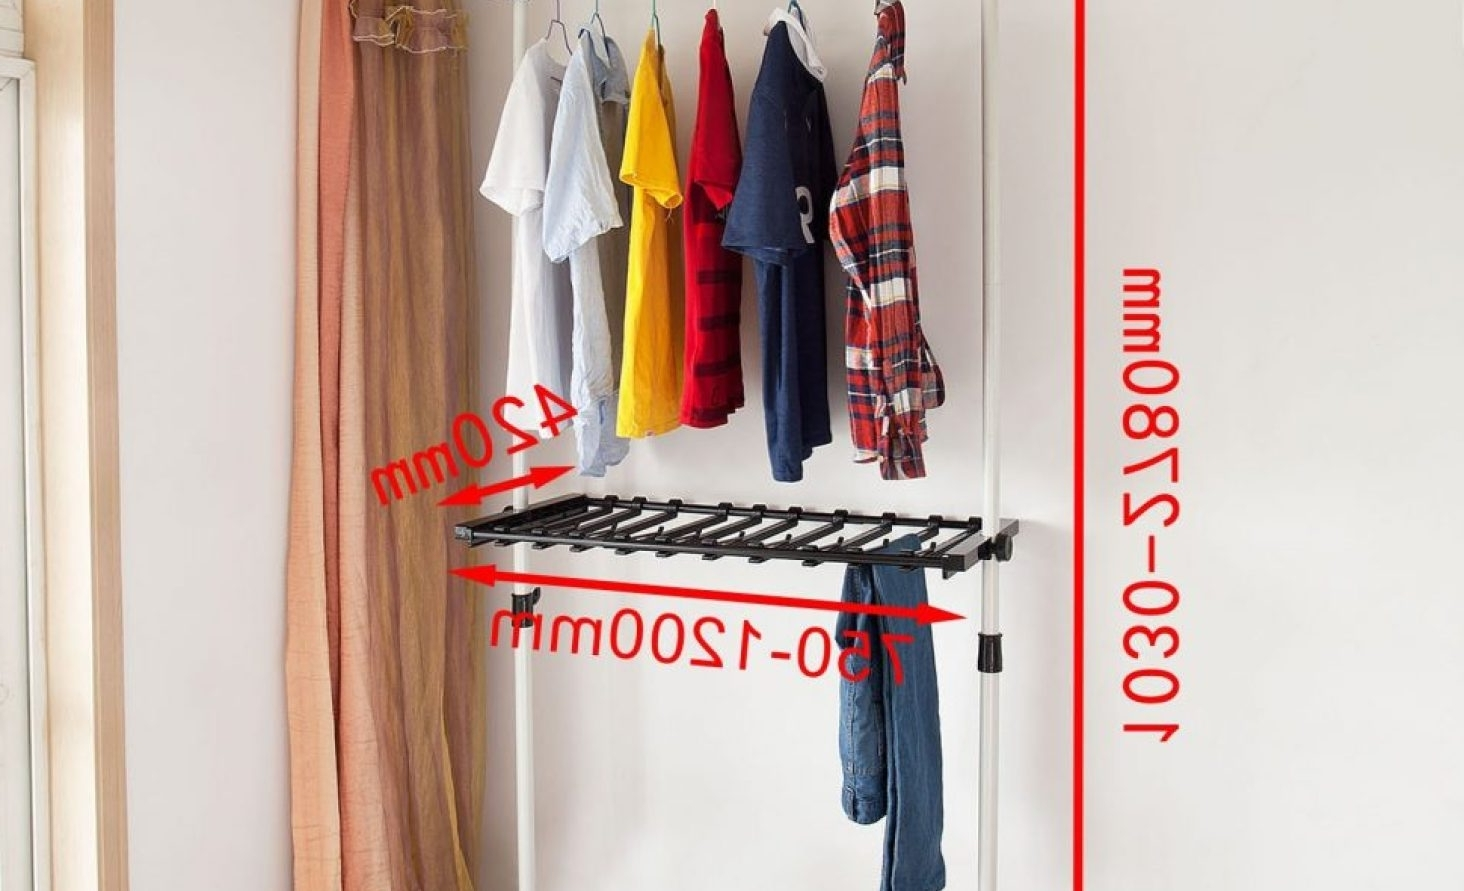 Favorite Shelf : Wardrobe Hanging Rail Stunning Double Hanging Rail Within Tall Double Hanging Rail Wardrobes (View 5 of 15)